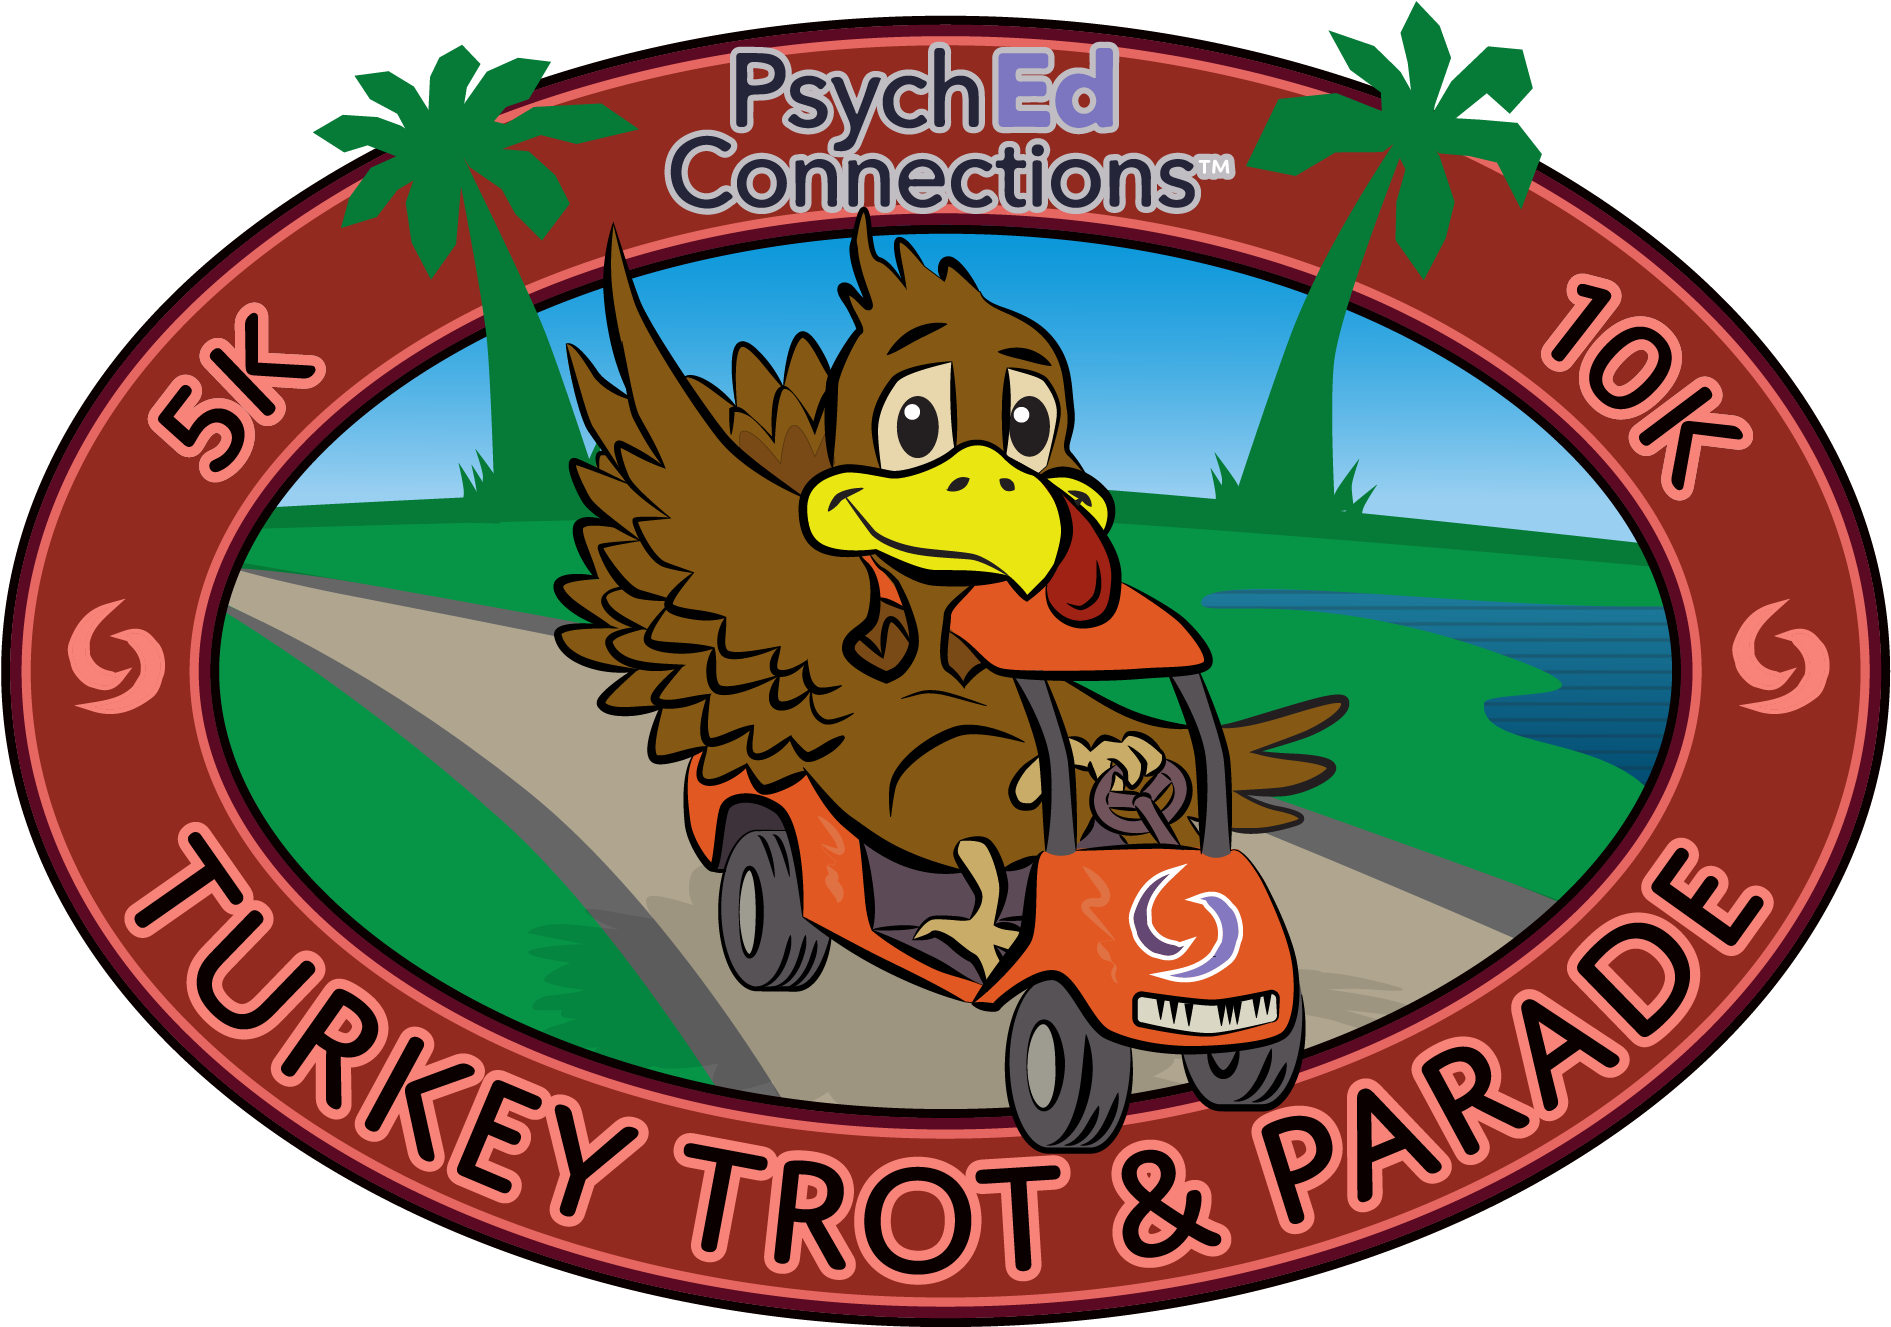 Psych Ed Connections 5k/10k Turkey Trot, Fun Run &.